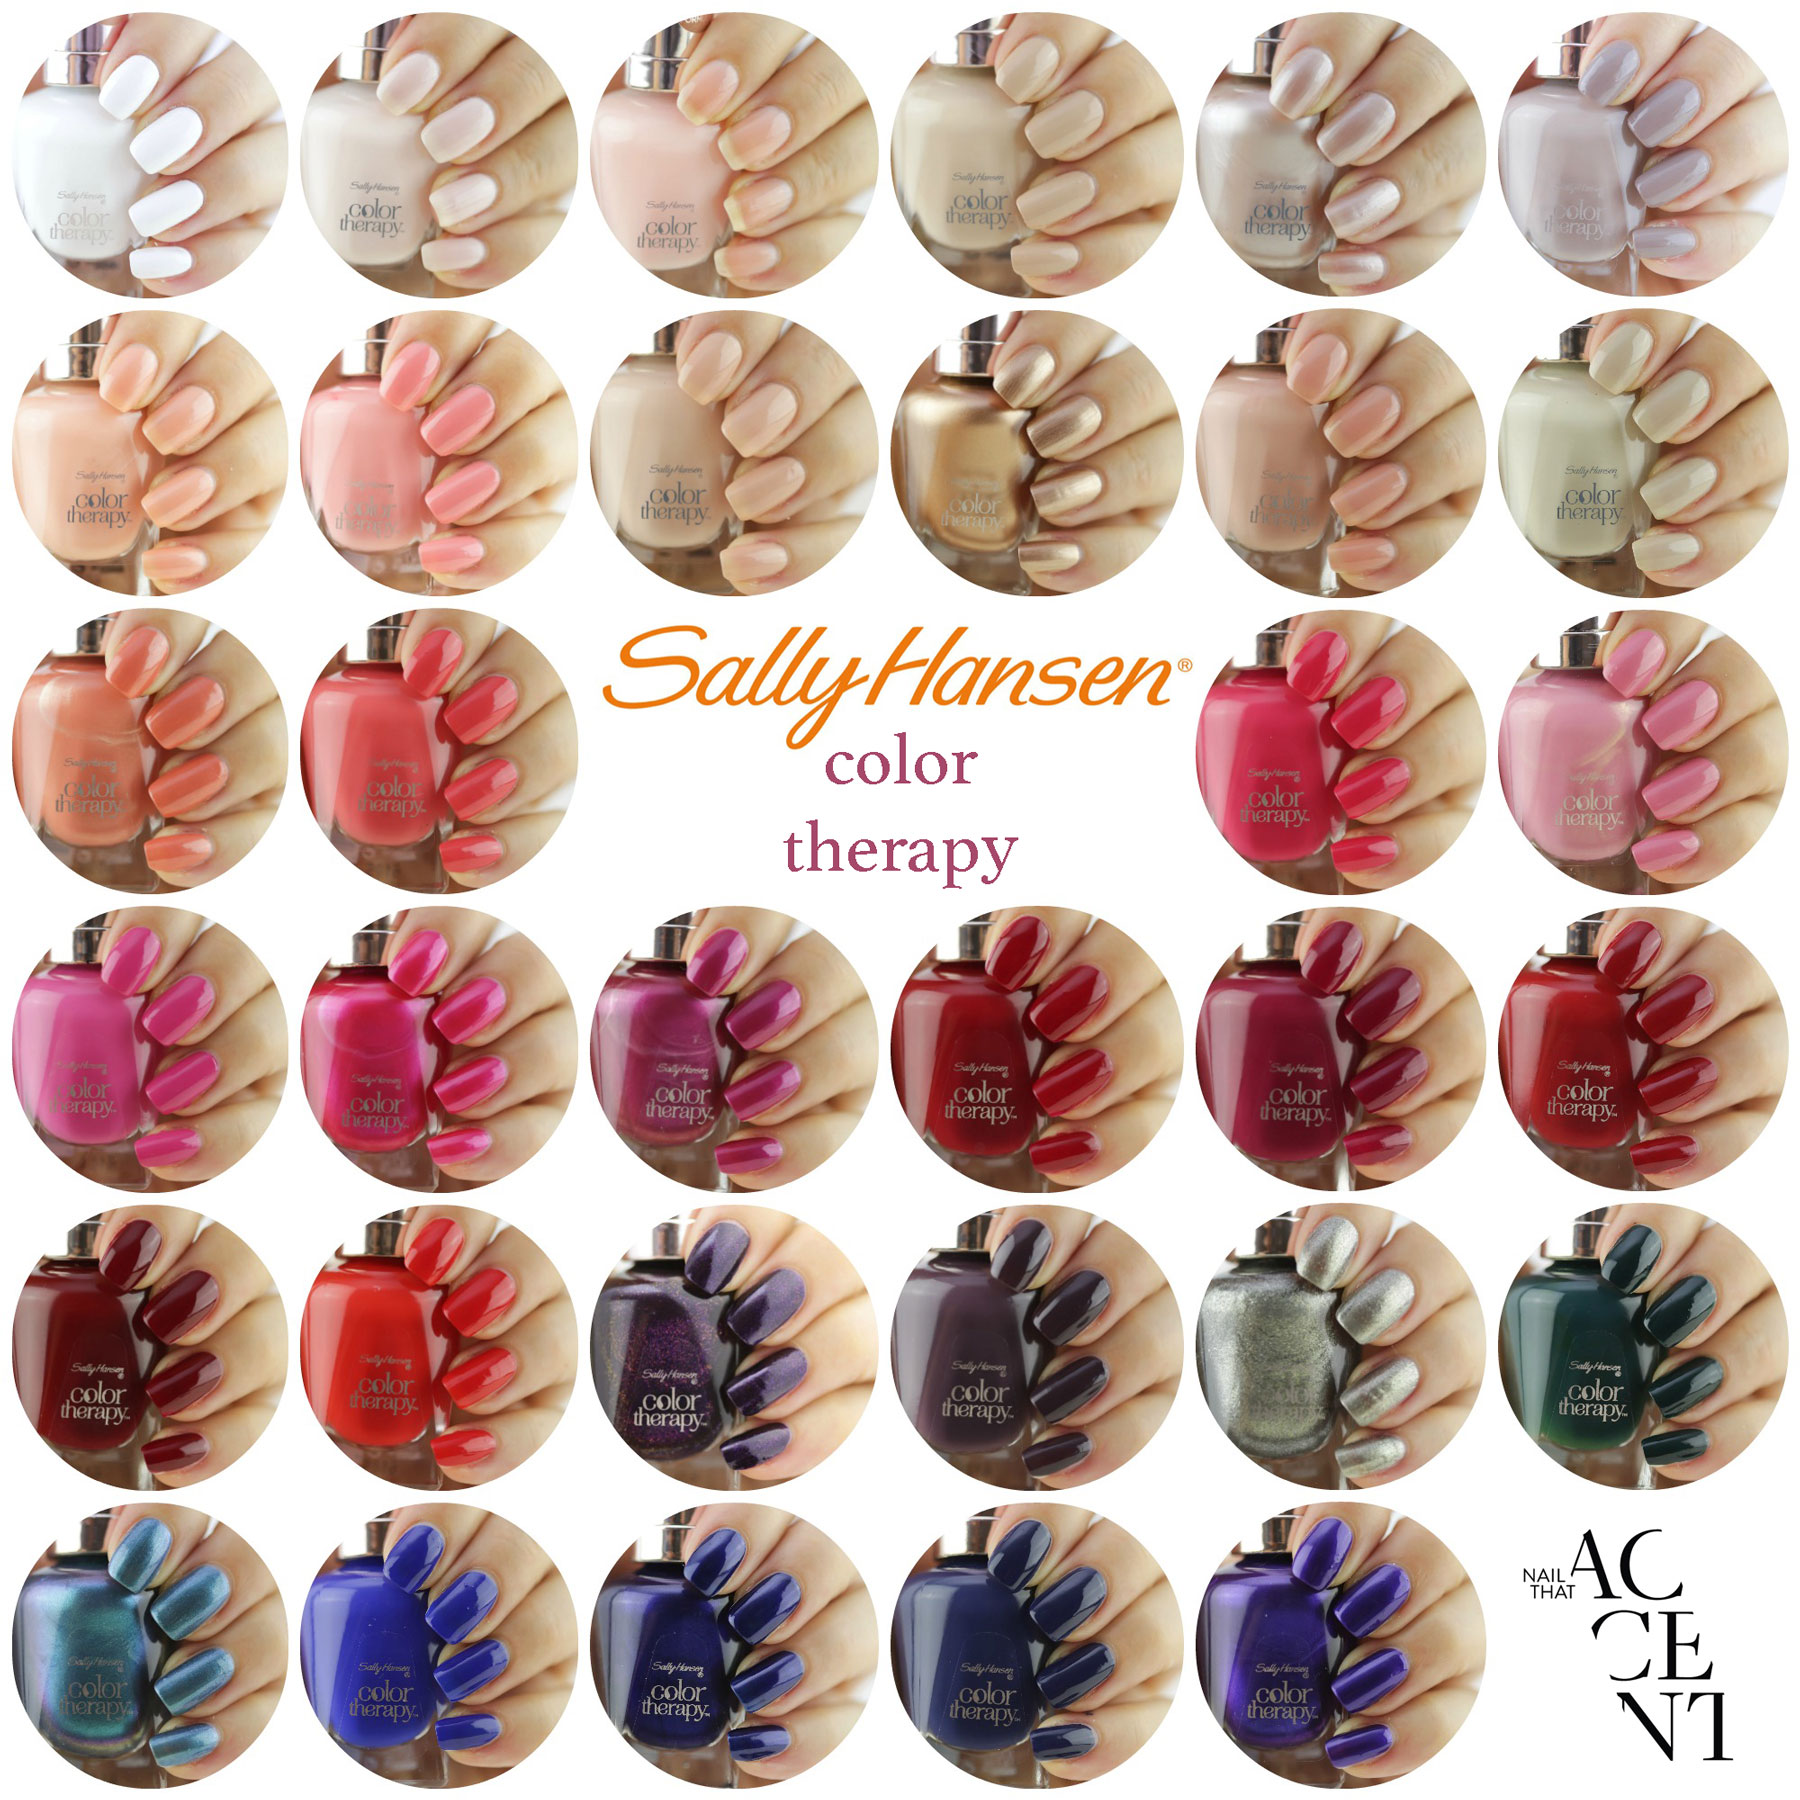 Colour therapy for digestion - Colour Therapy For Glowing Skin Sally Hansen Color Therapy Swatches